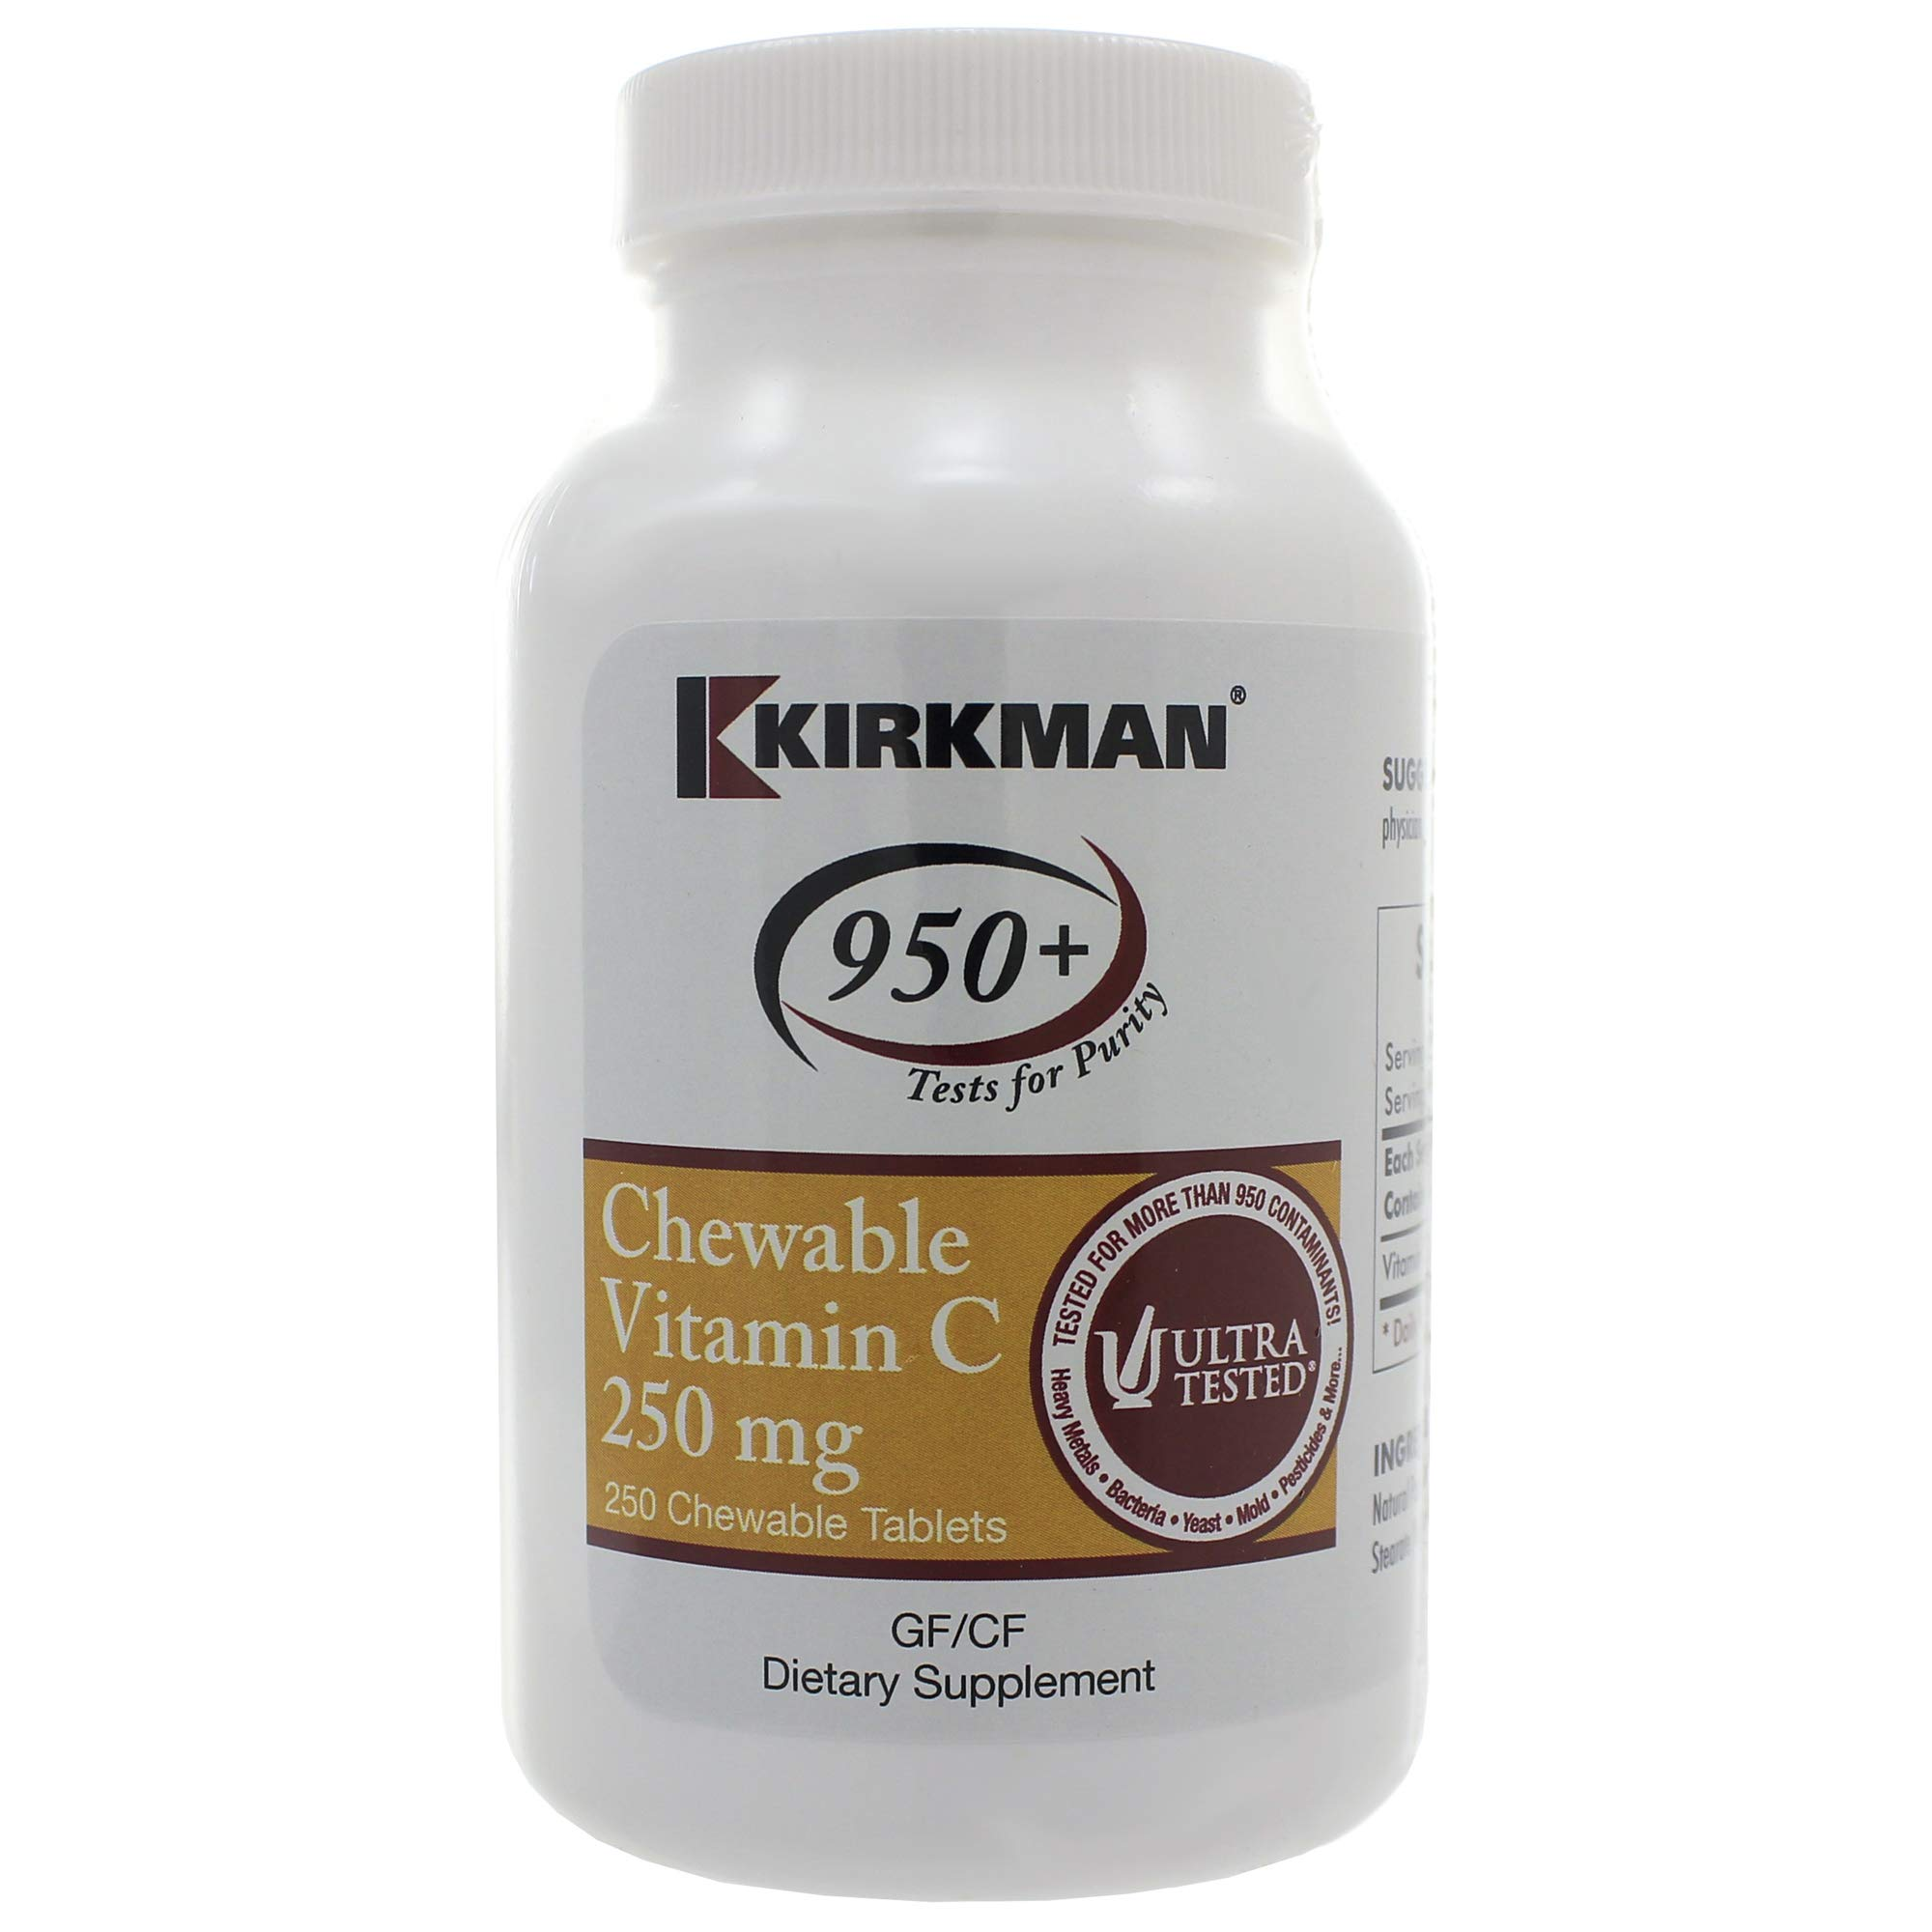 Chewable Vitamin C 250mg 250 Chewables - Pack of 3